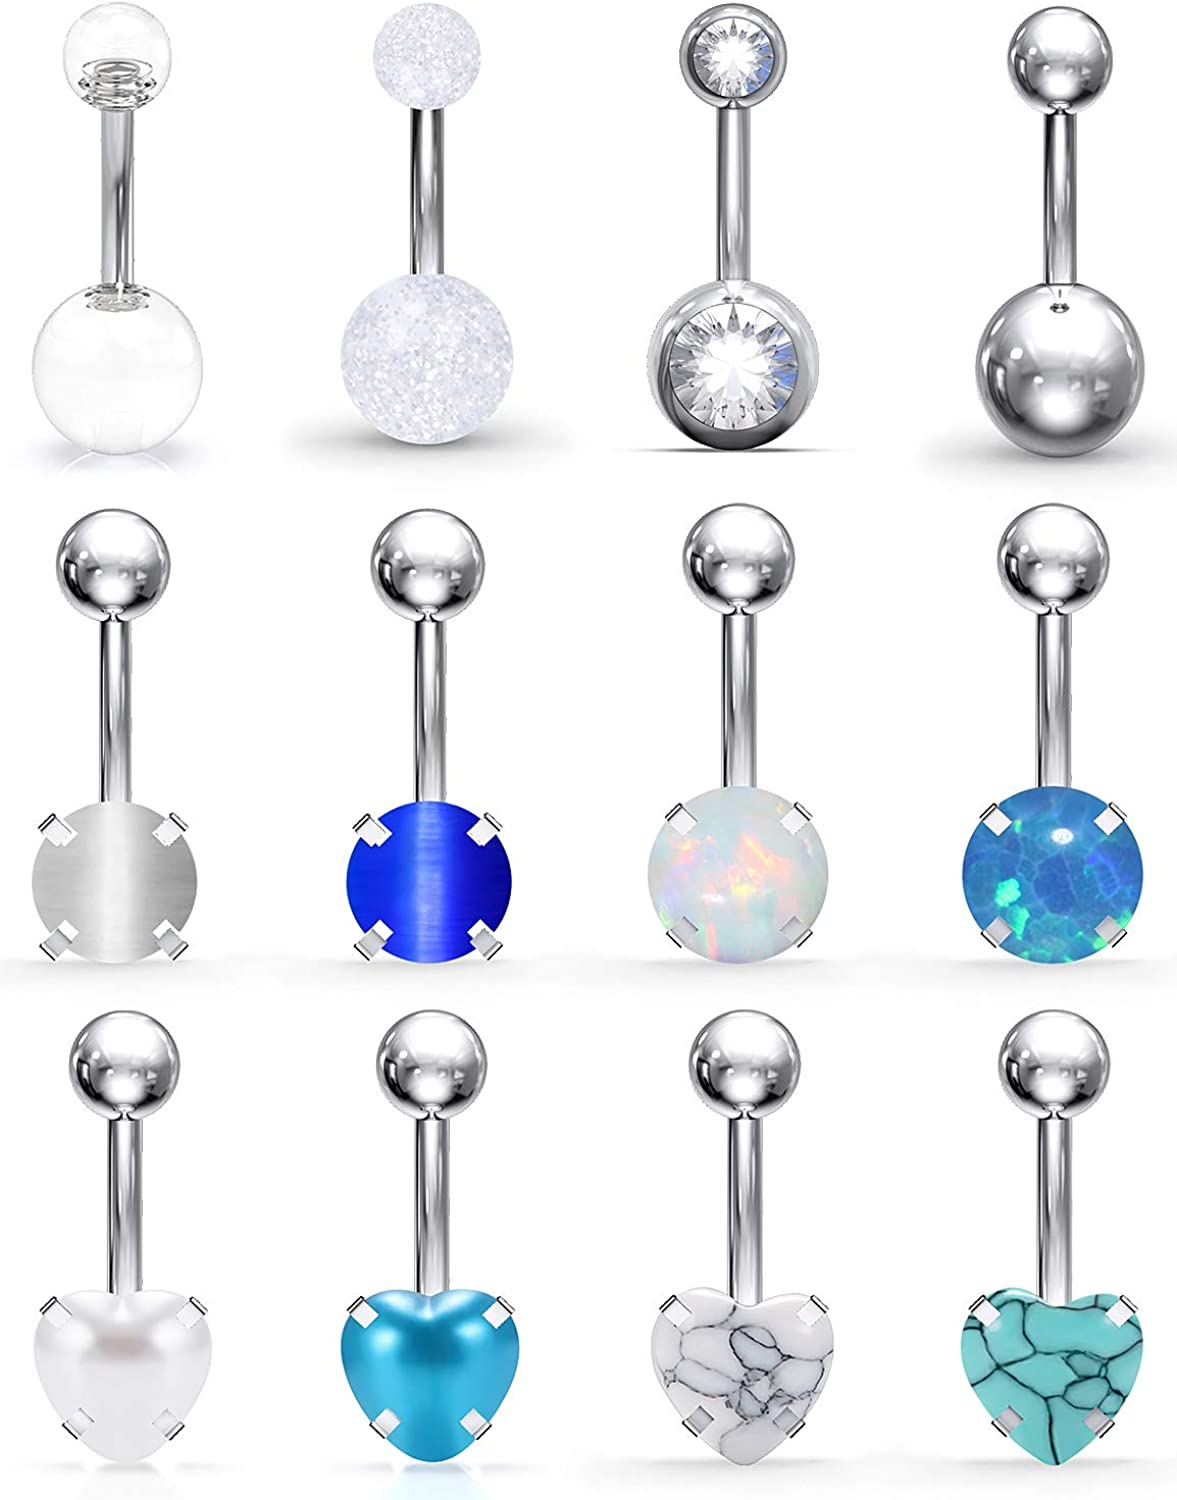 SCERRING Belly Button Rings 14G Stainless Steel Navel Belly Earring Heart Opal Navel Ring Barbell Body Piercing Jewelry 12PCS